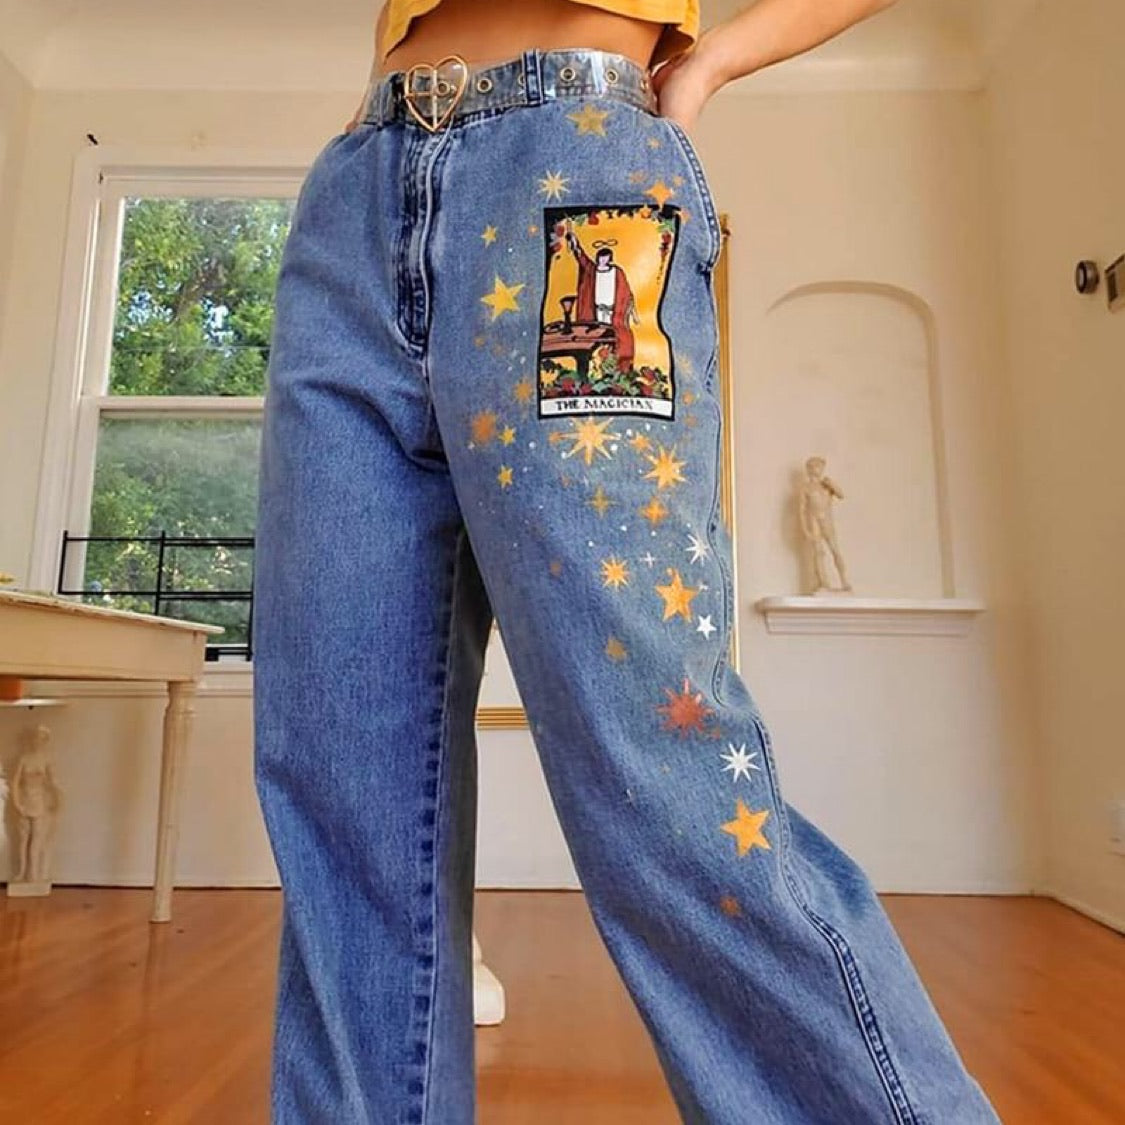 Star Cartoons Printed Jeans - Cila Clothing